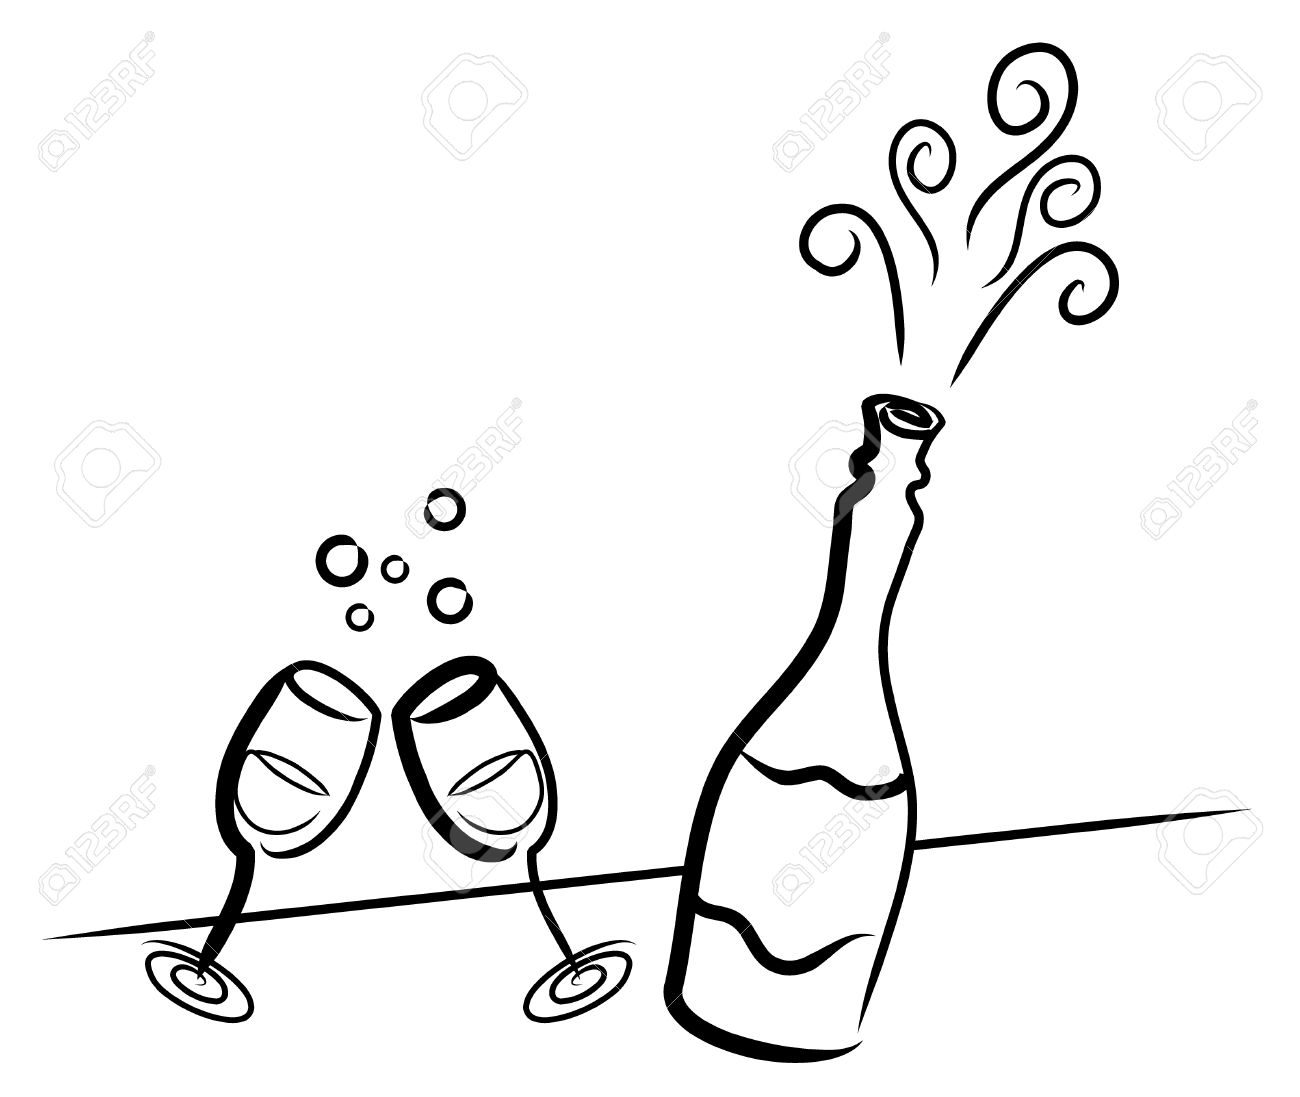 simple drawing of a bottle of champagne and two glasses royalty free